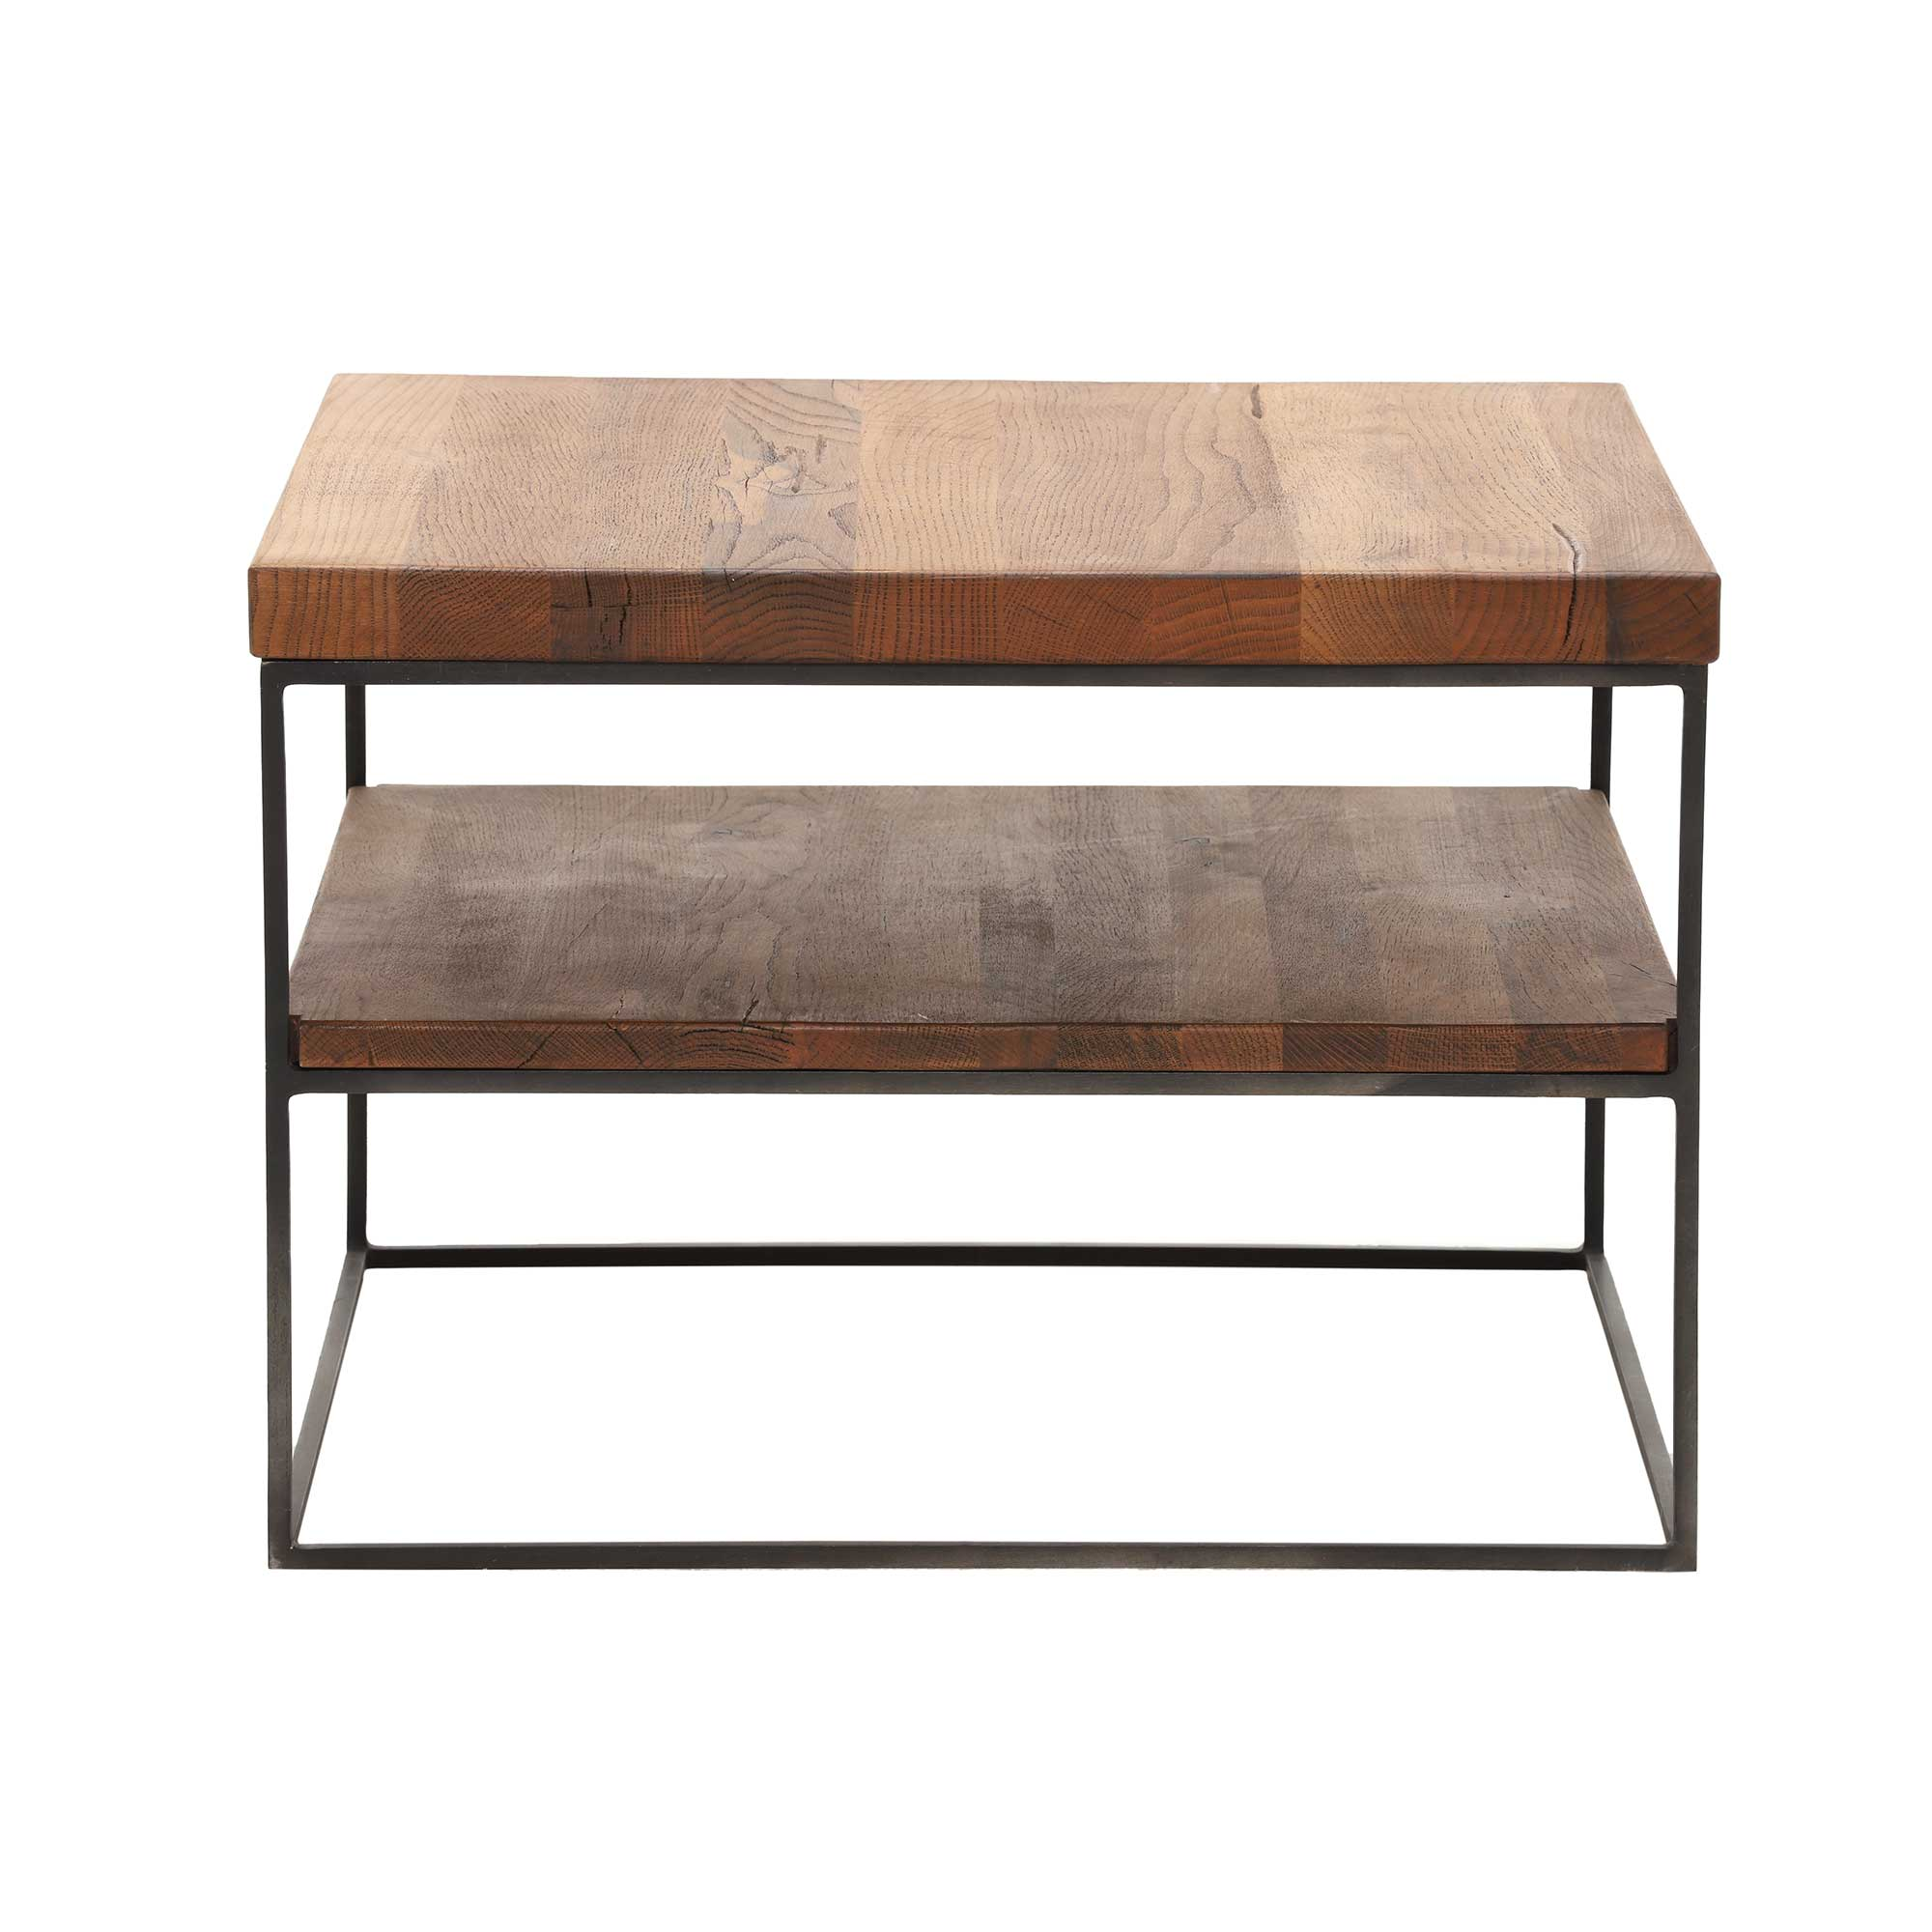 CORMAR OILED OAK LAMP TABLE - L60cm x D60cm x H60cm. END VIEW